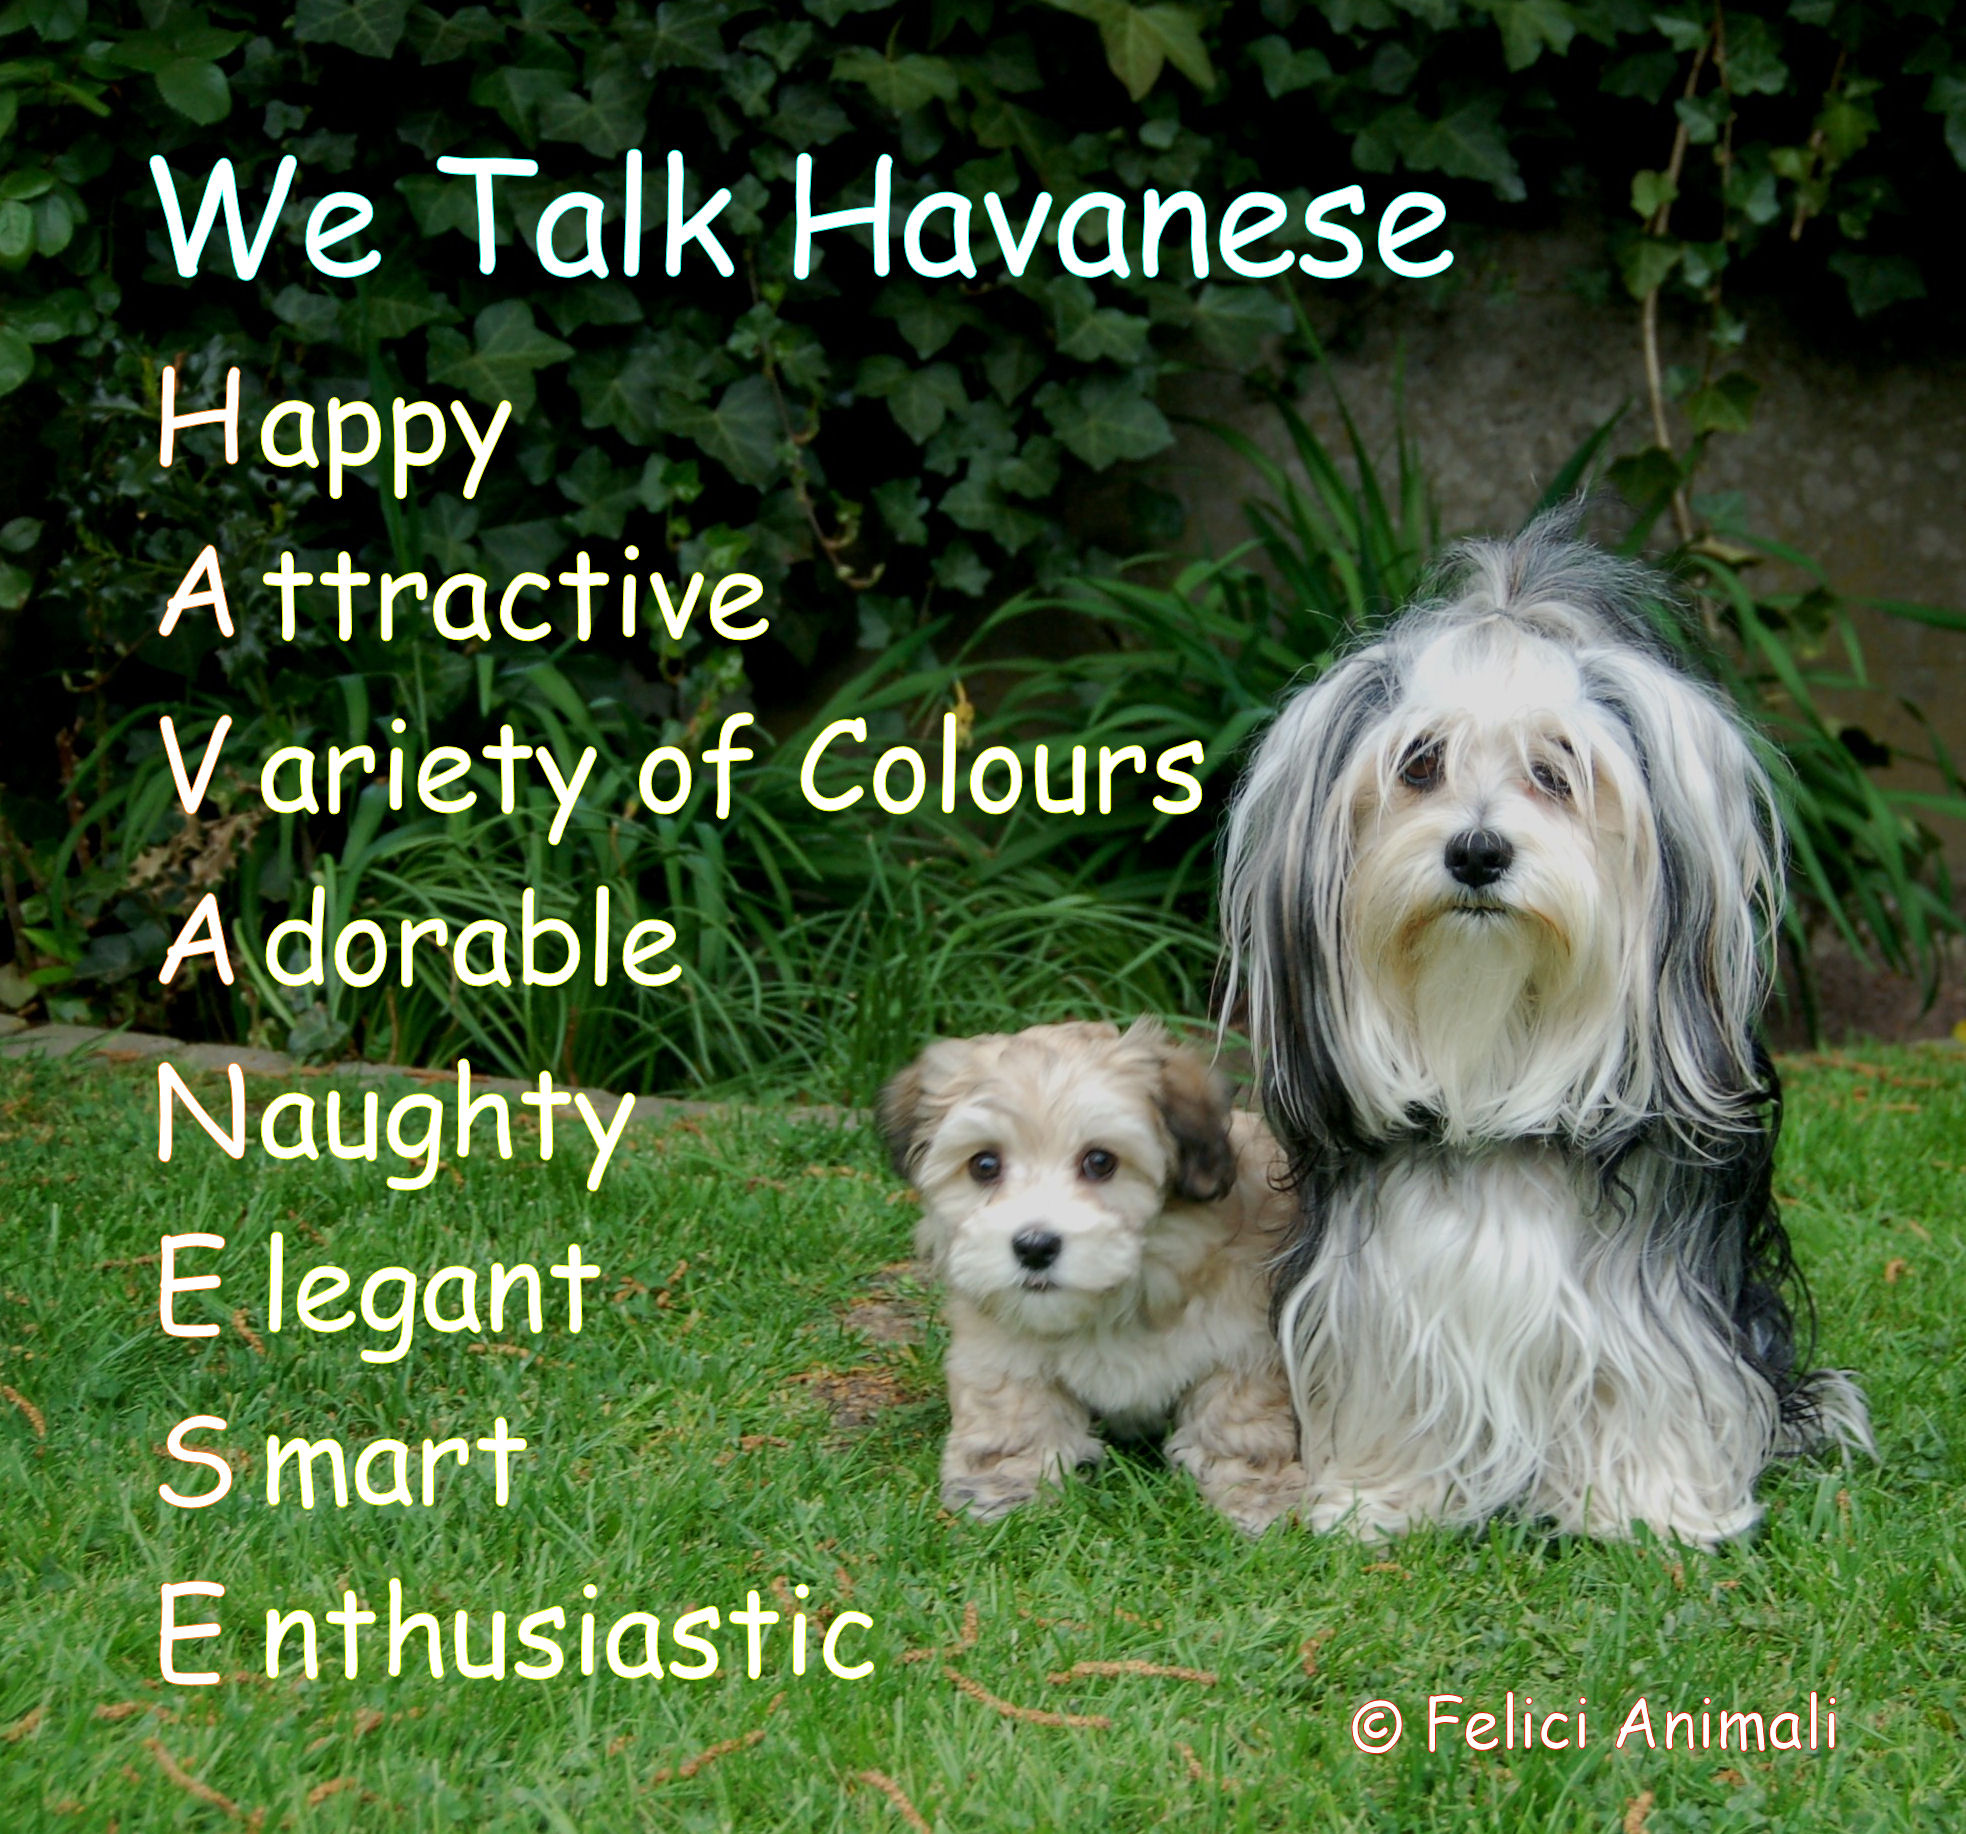 We Talk Havanese